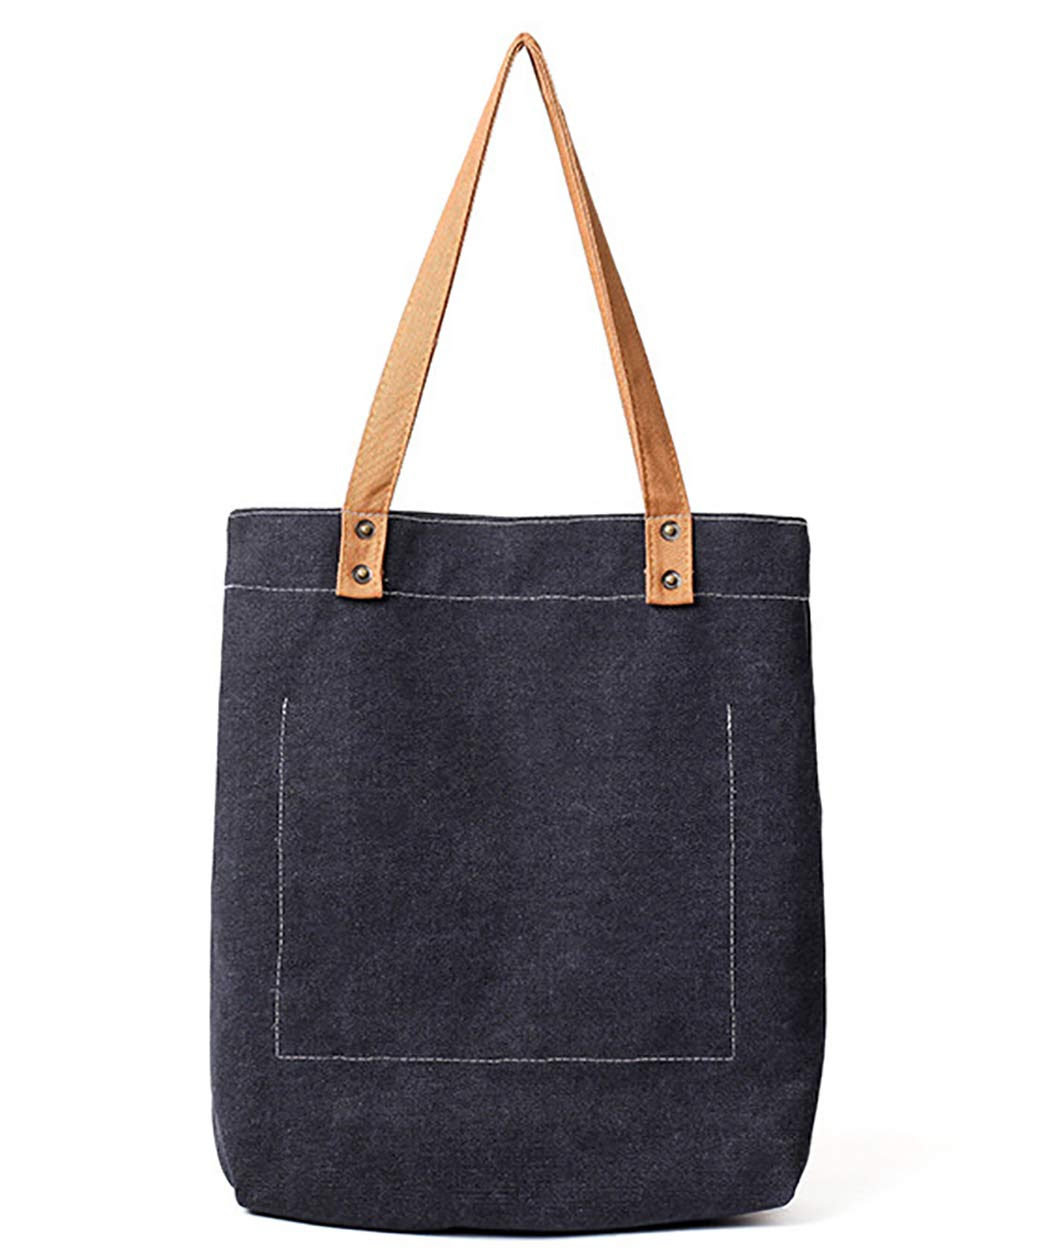 d6fb1a3ab Amazon.com: Fanspack Women's Canvas Tote Bag Simple Casual Top Handle Hobo  Bag Shoulder Bag Shopping Work Bag: Fanspack Direct